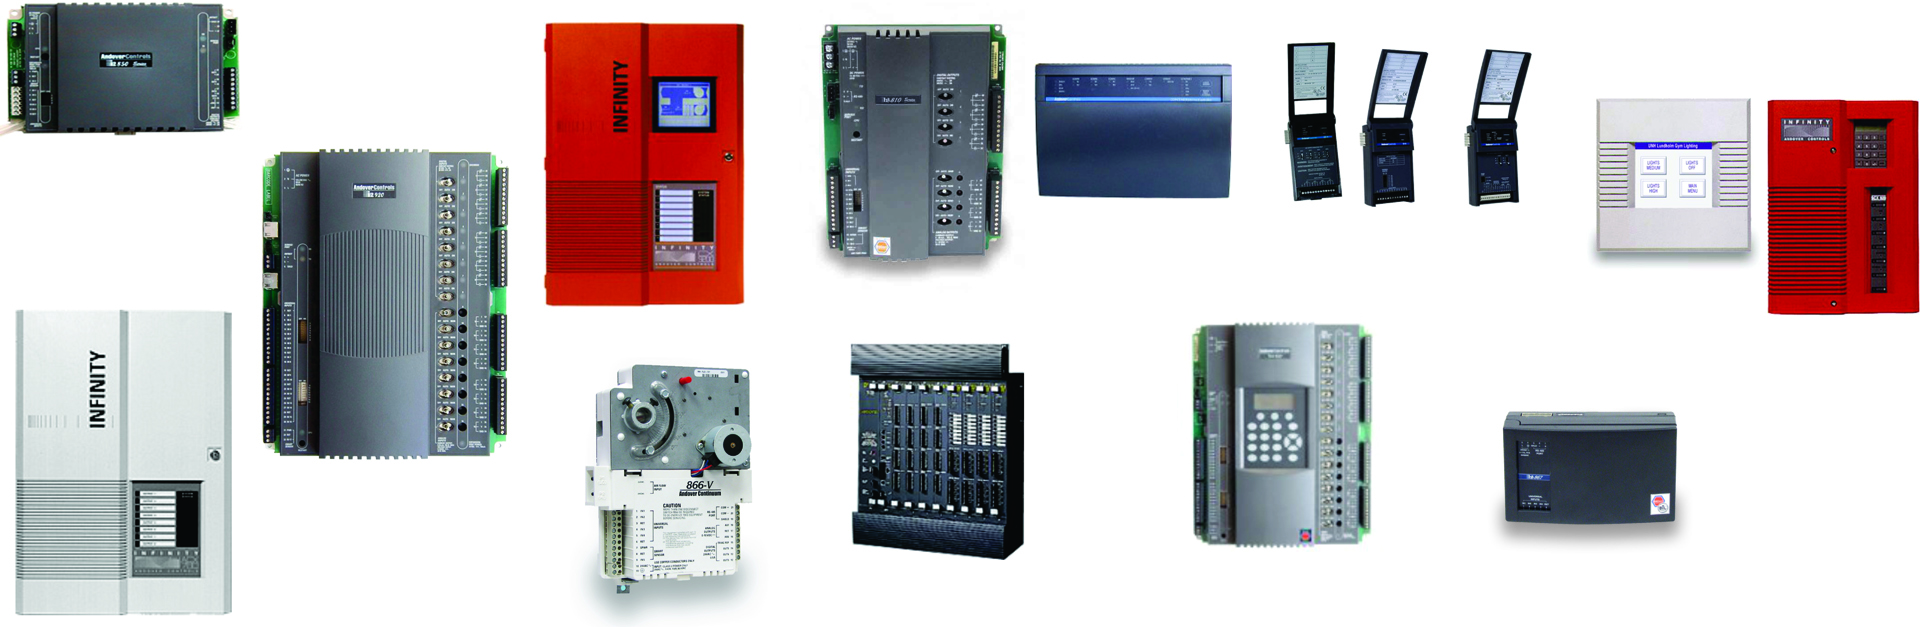 Schneider & Andover Controls Parts/Repair/Maintenance Service